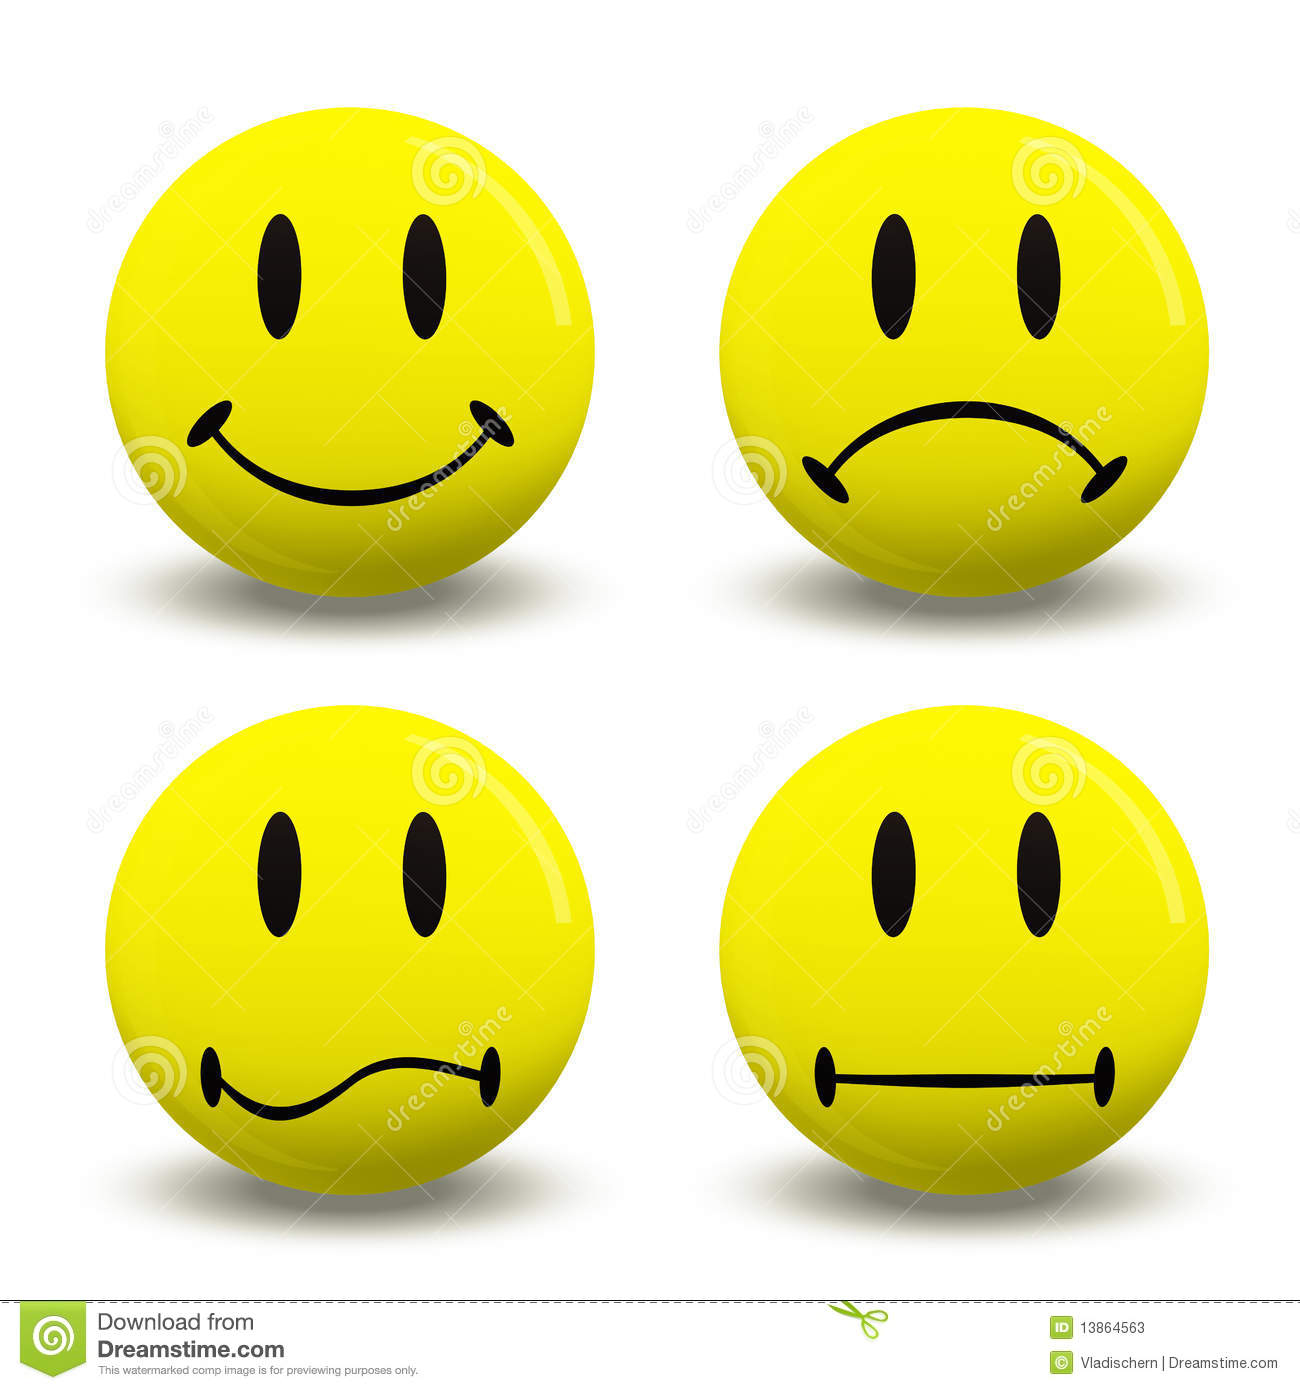 Feelings Faces Clip Art - Emotion Faces Clip Art